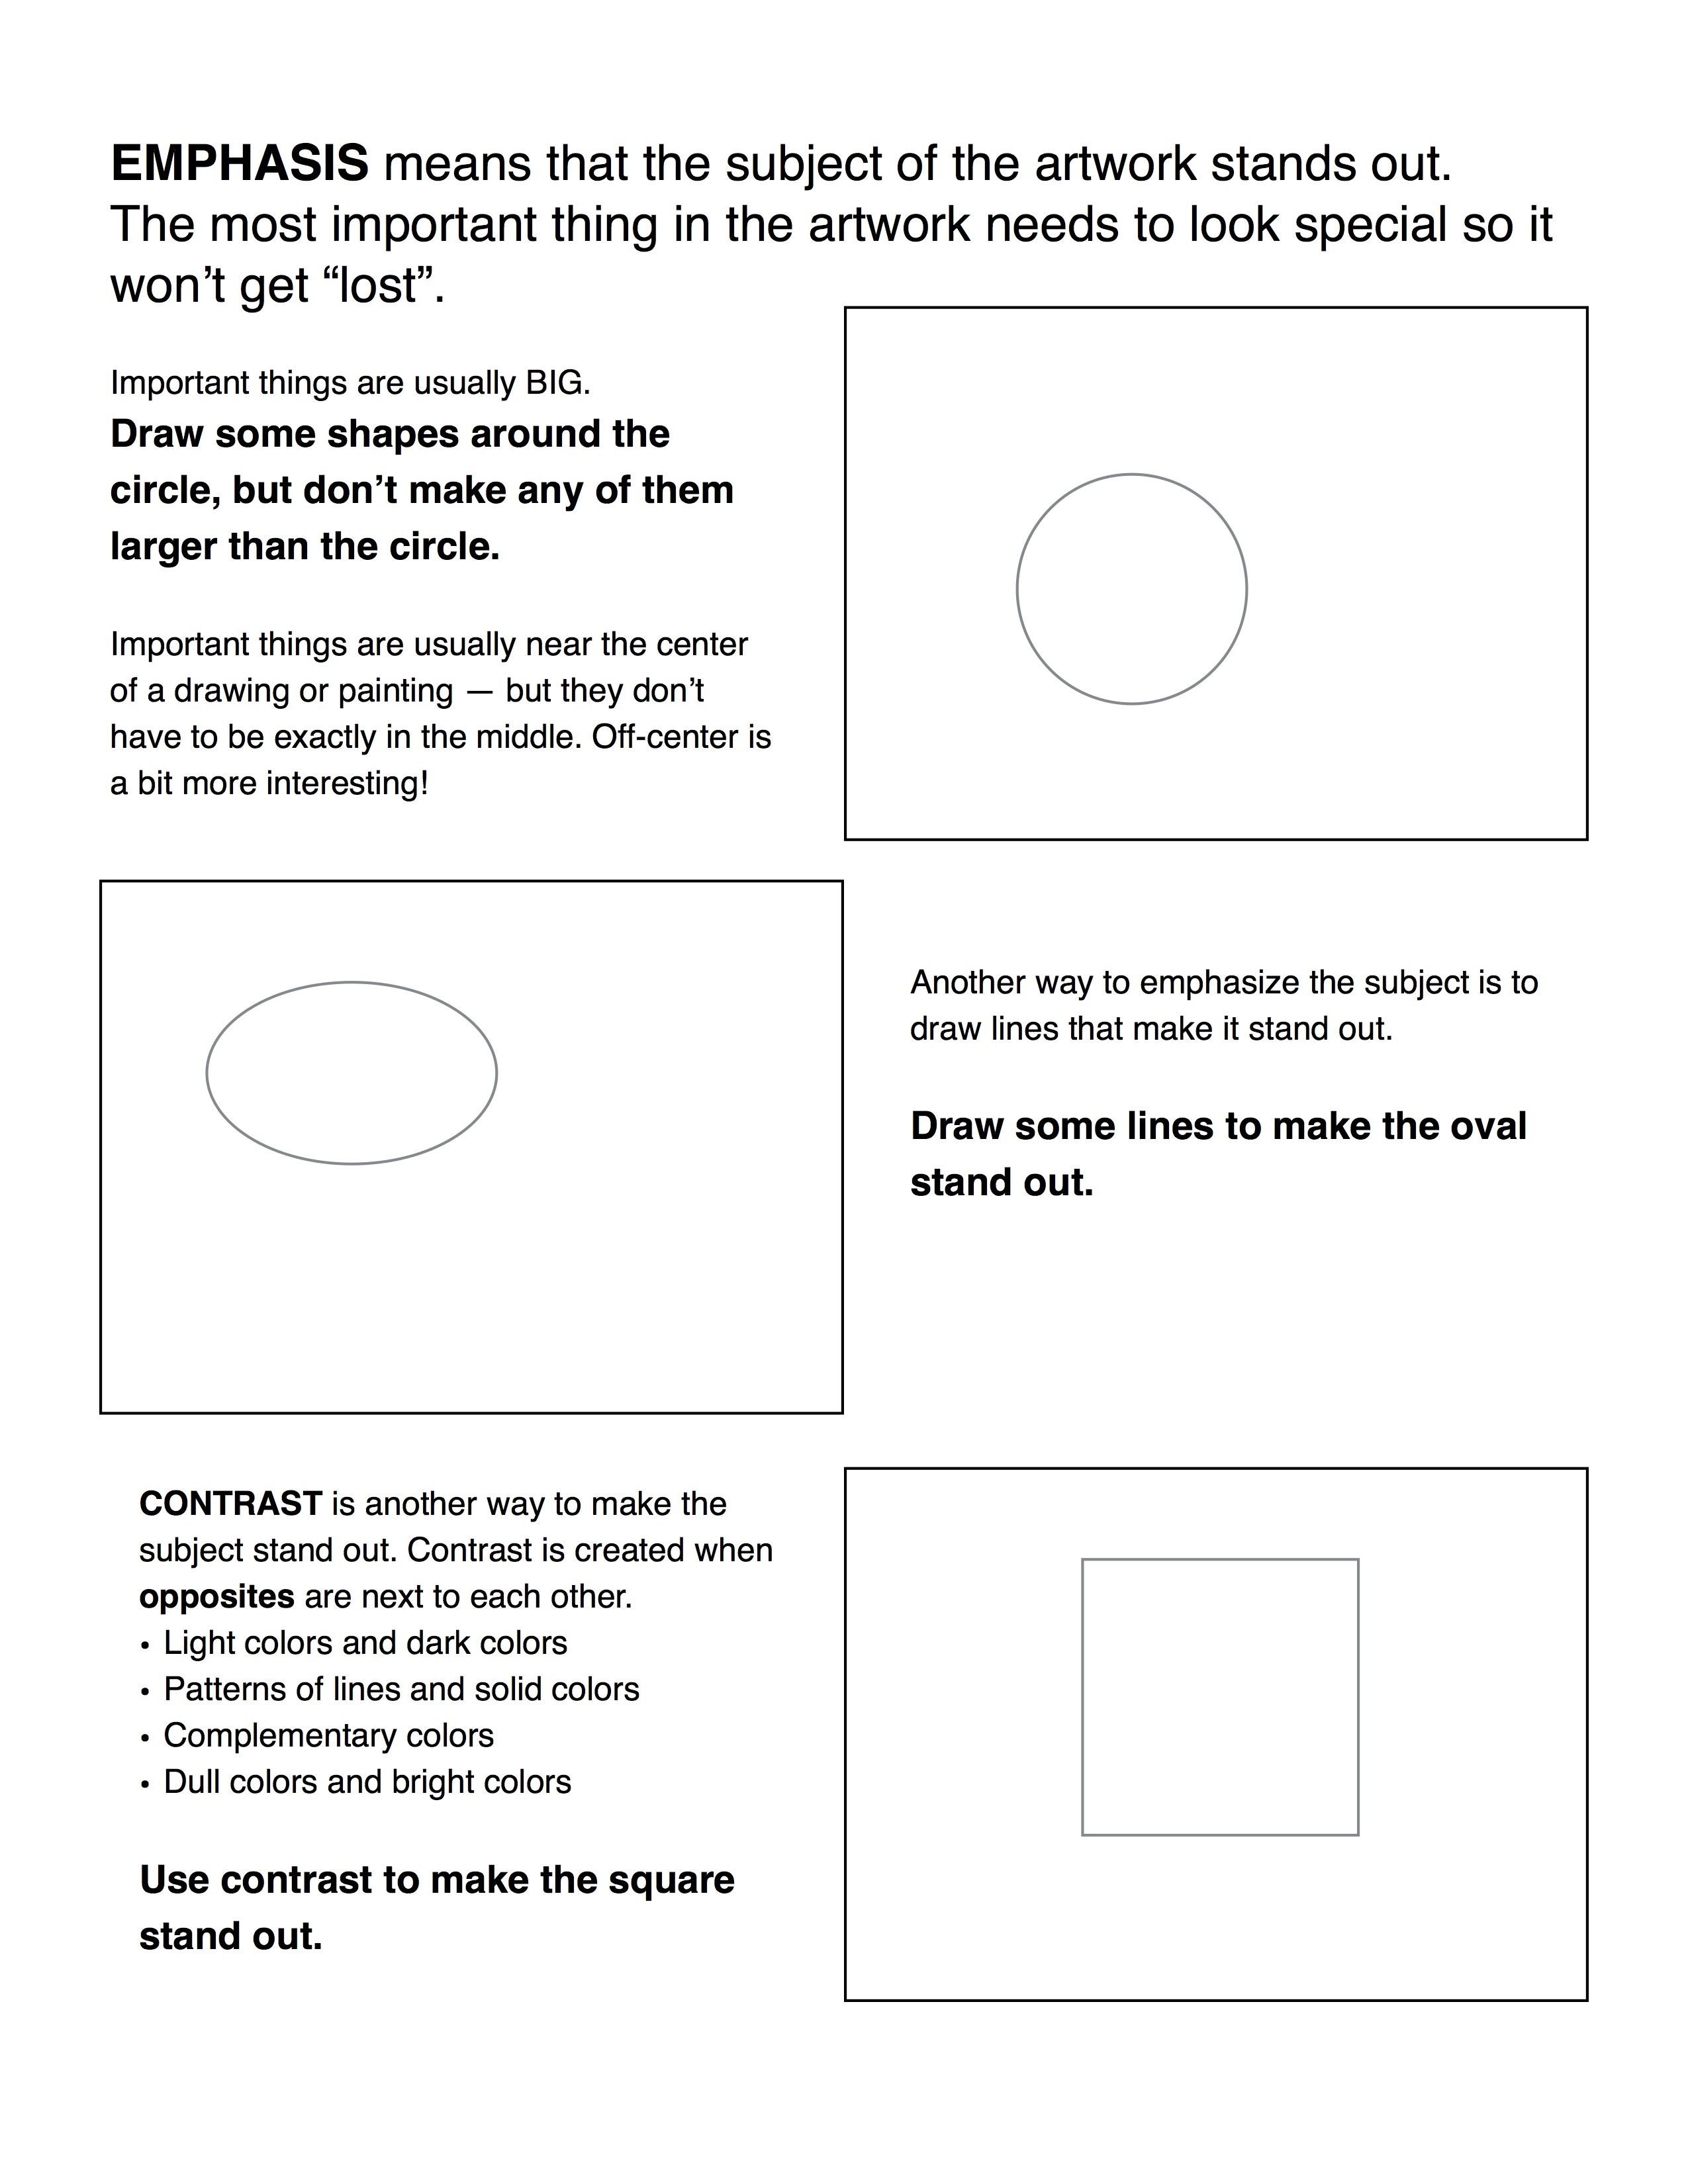 worksheet Art Worksheet emphasis contrast worksheet print this art teacher pinterest worksheet